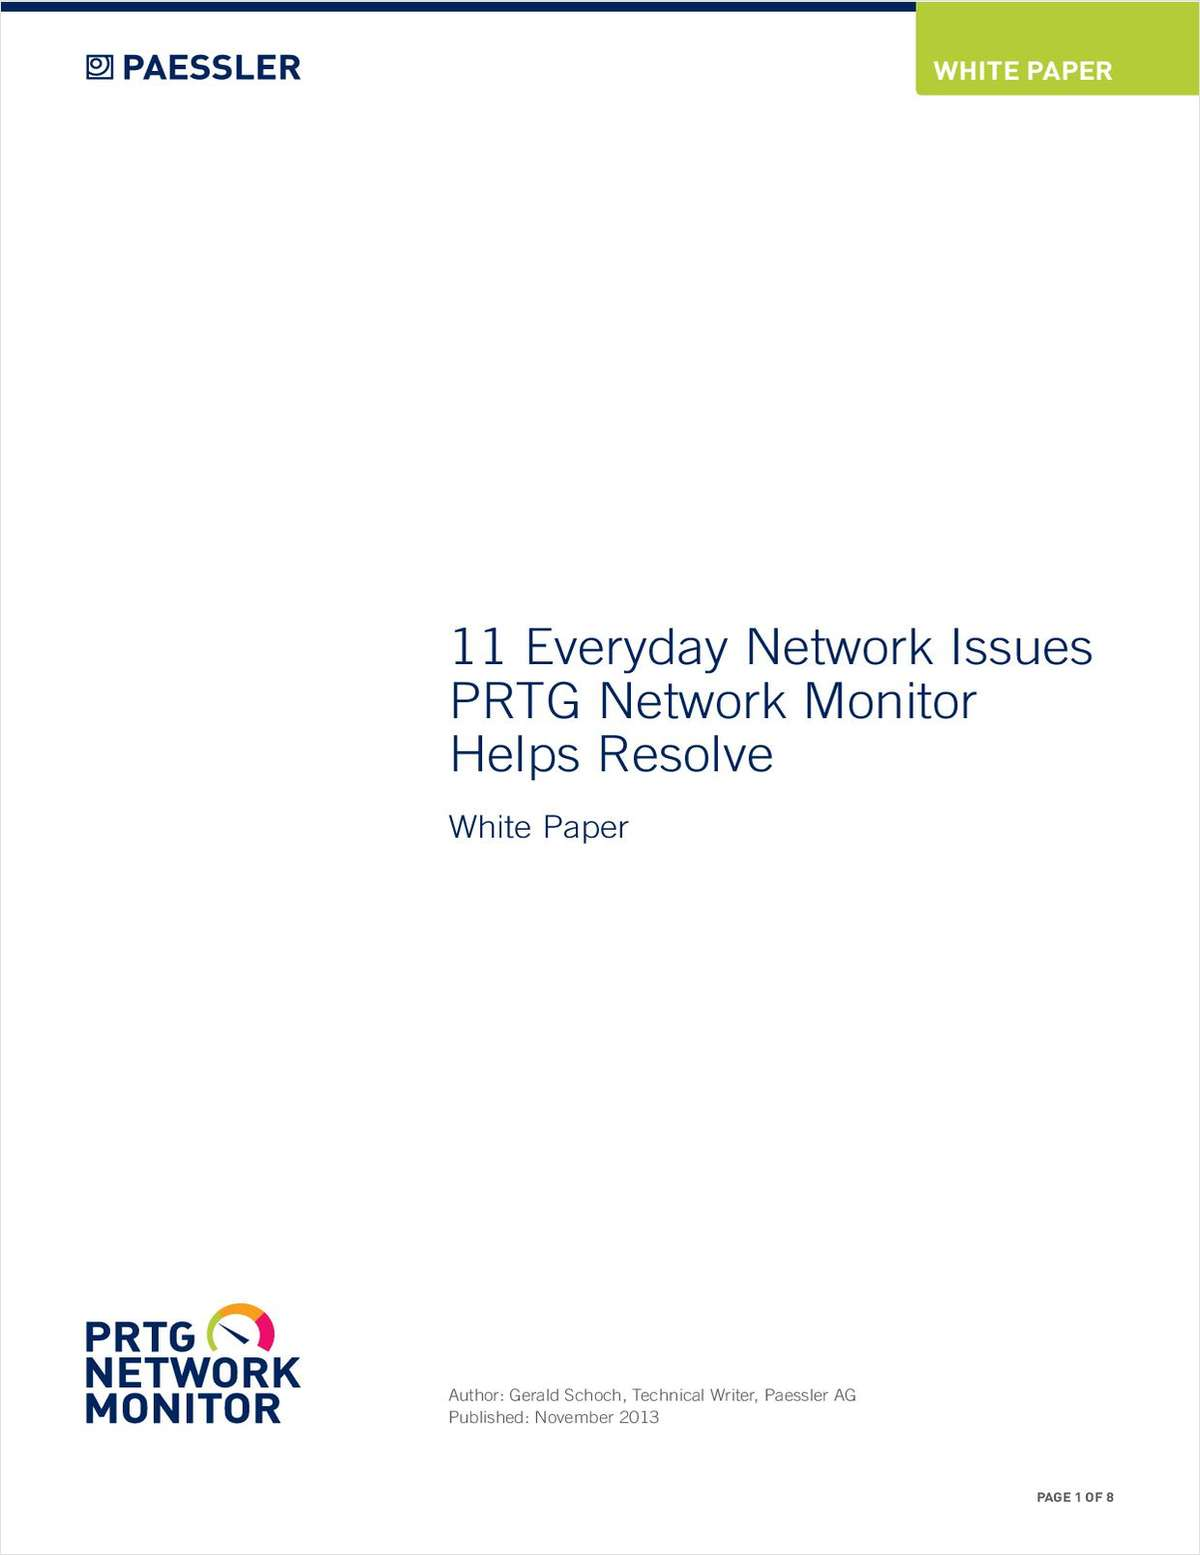 11 Everyday Network Issues PRTG Network Monitor Helps Resolve